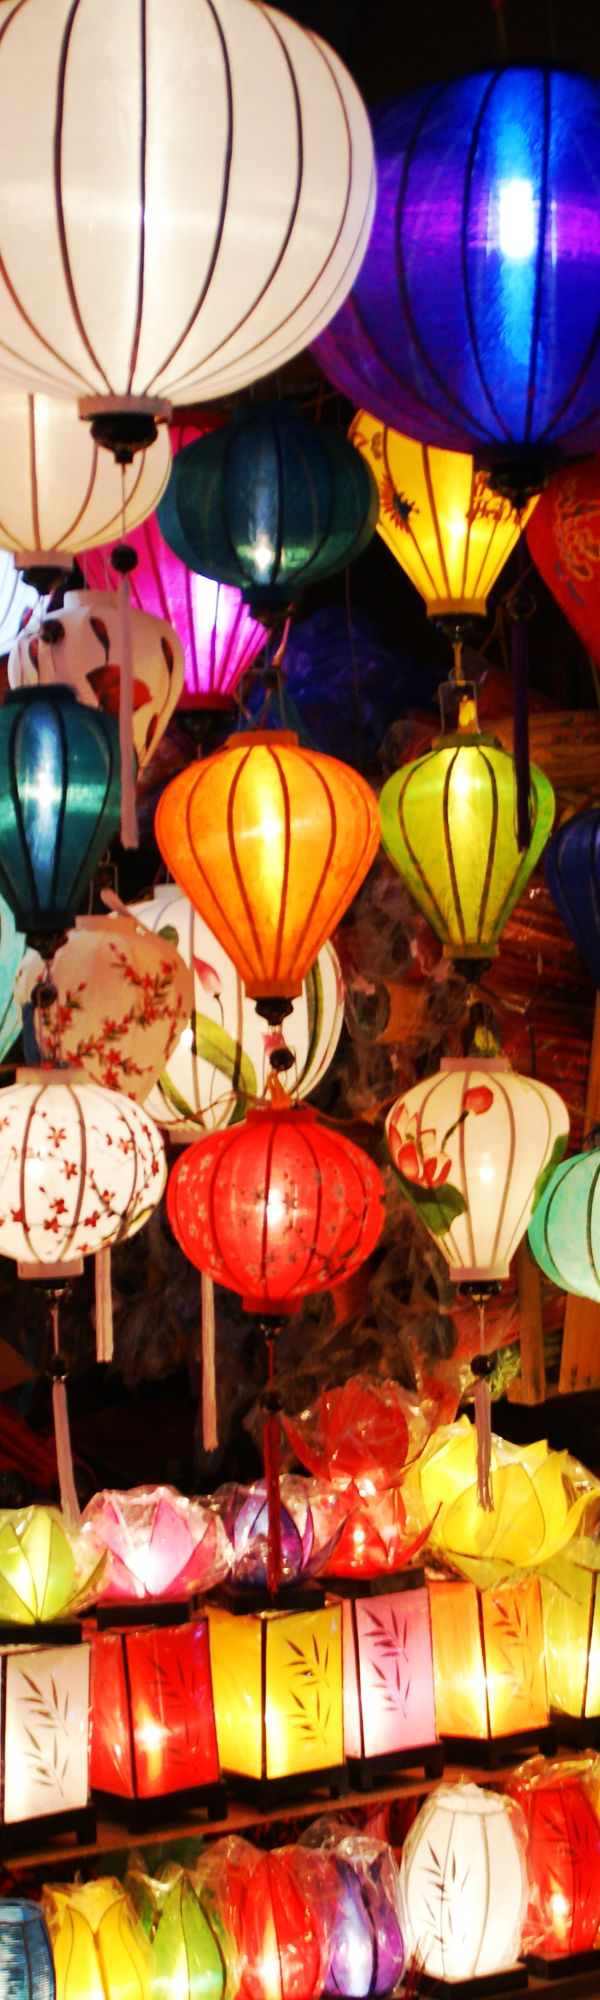 世界遺産の町ホイアンでは美しいランタン祭が有名です。(UNESCO World Heritage Site Hoi An Ancient Town attracts people with the beautiful Lantern Festival)